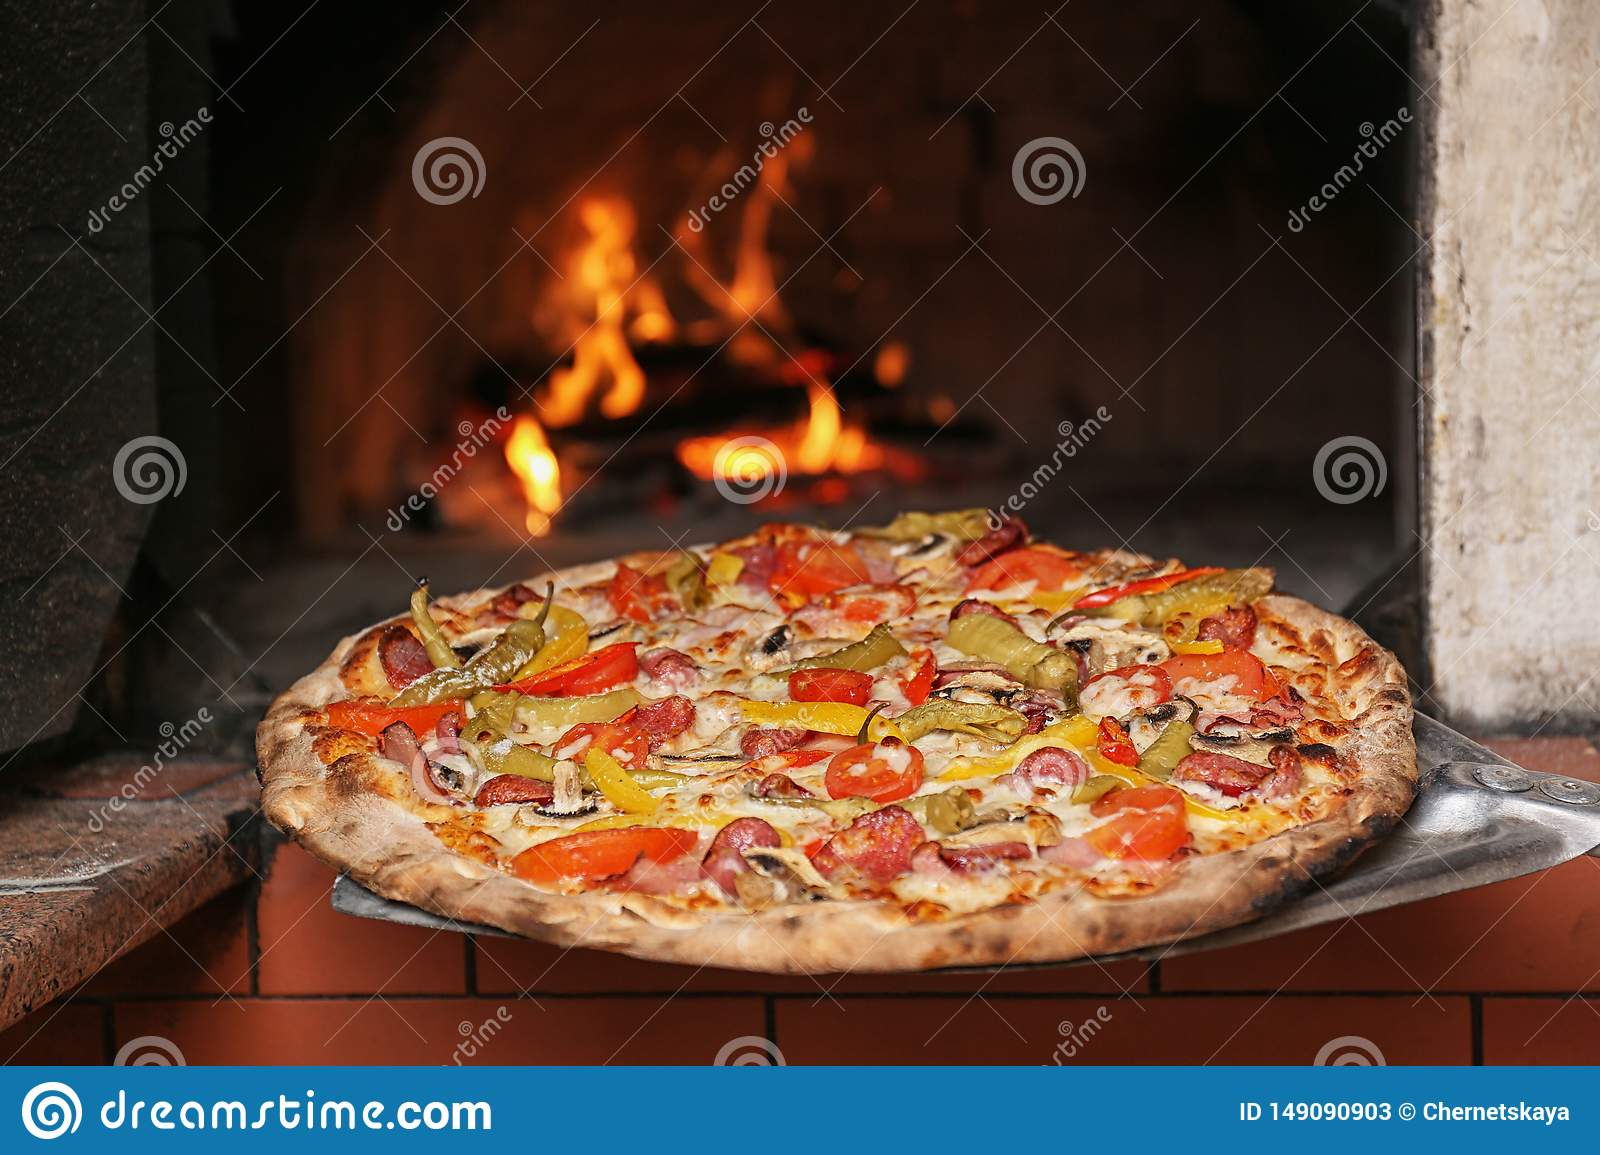 Taking tasty pizza out of oven in restaurant